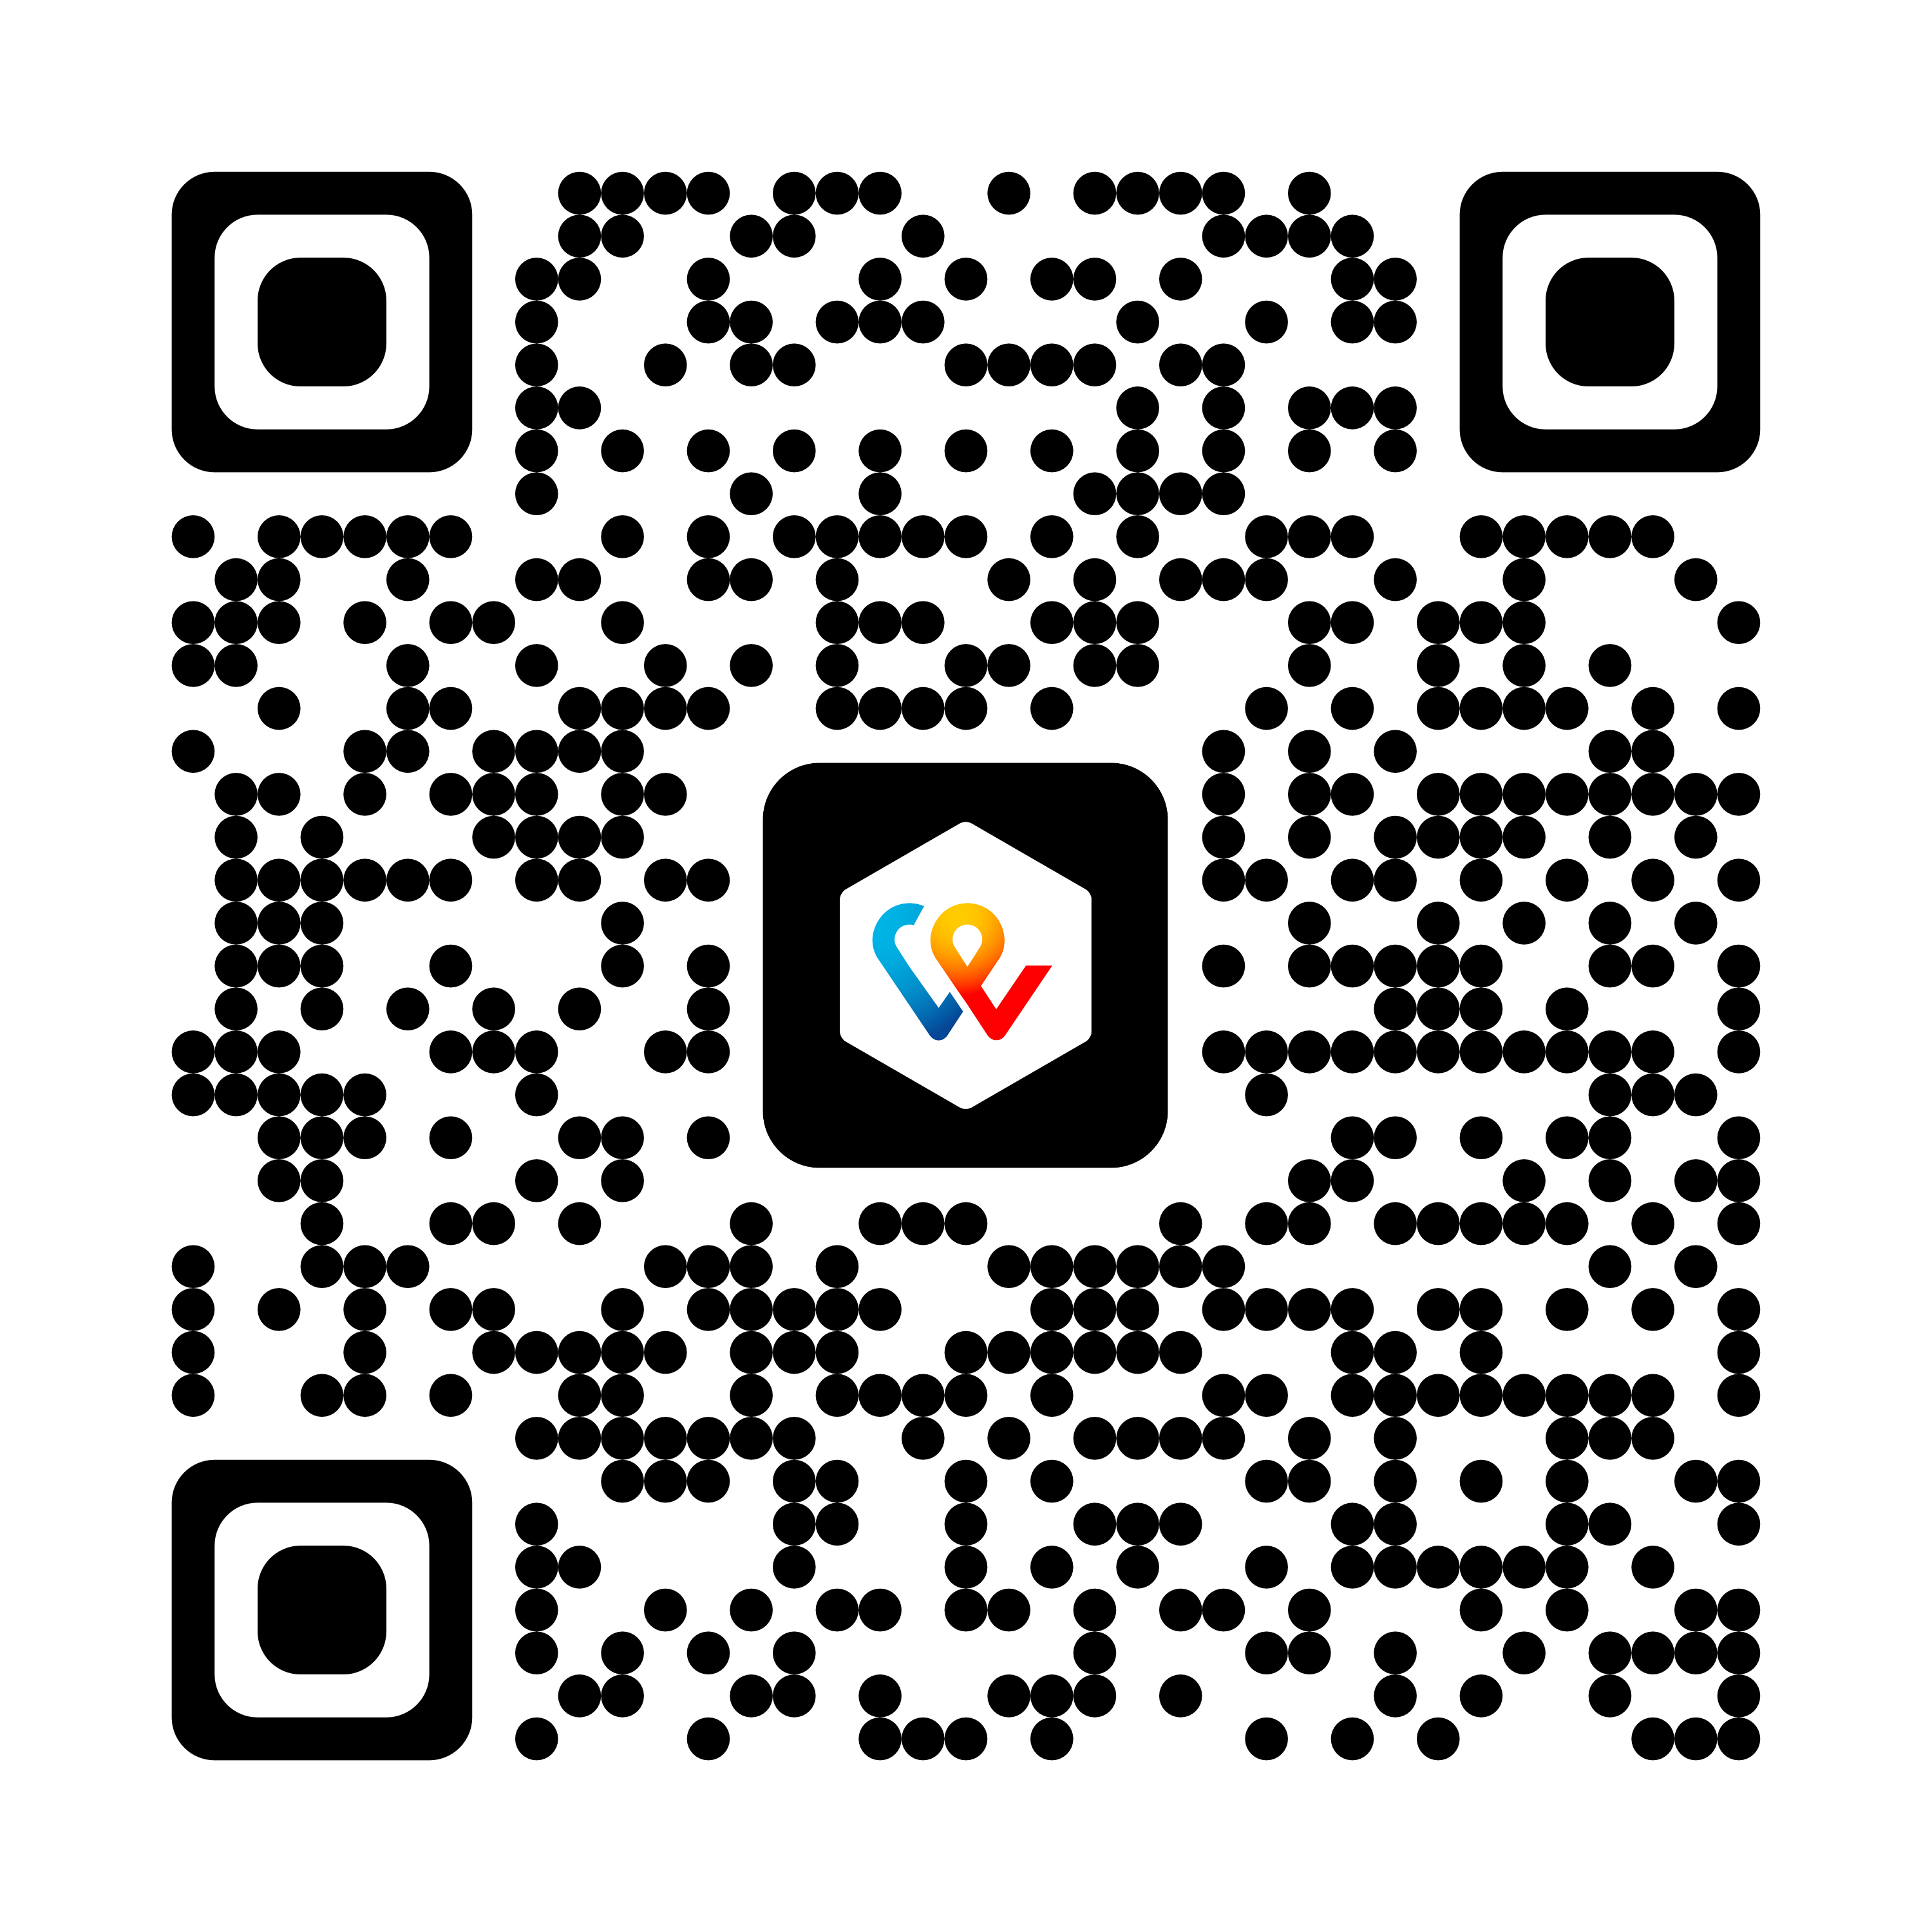 QRCode_PROJECT-E Variabel